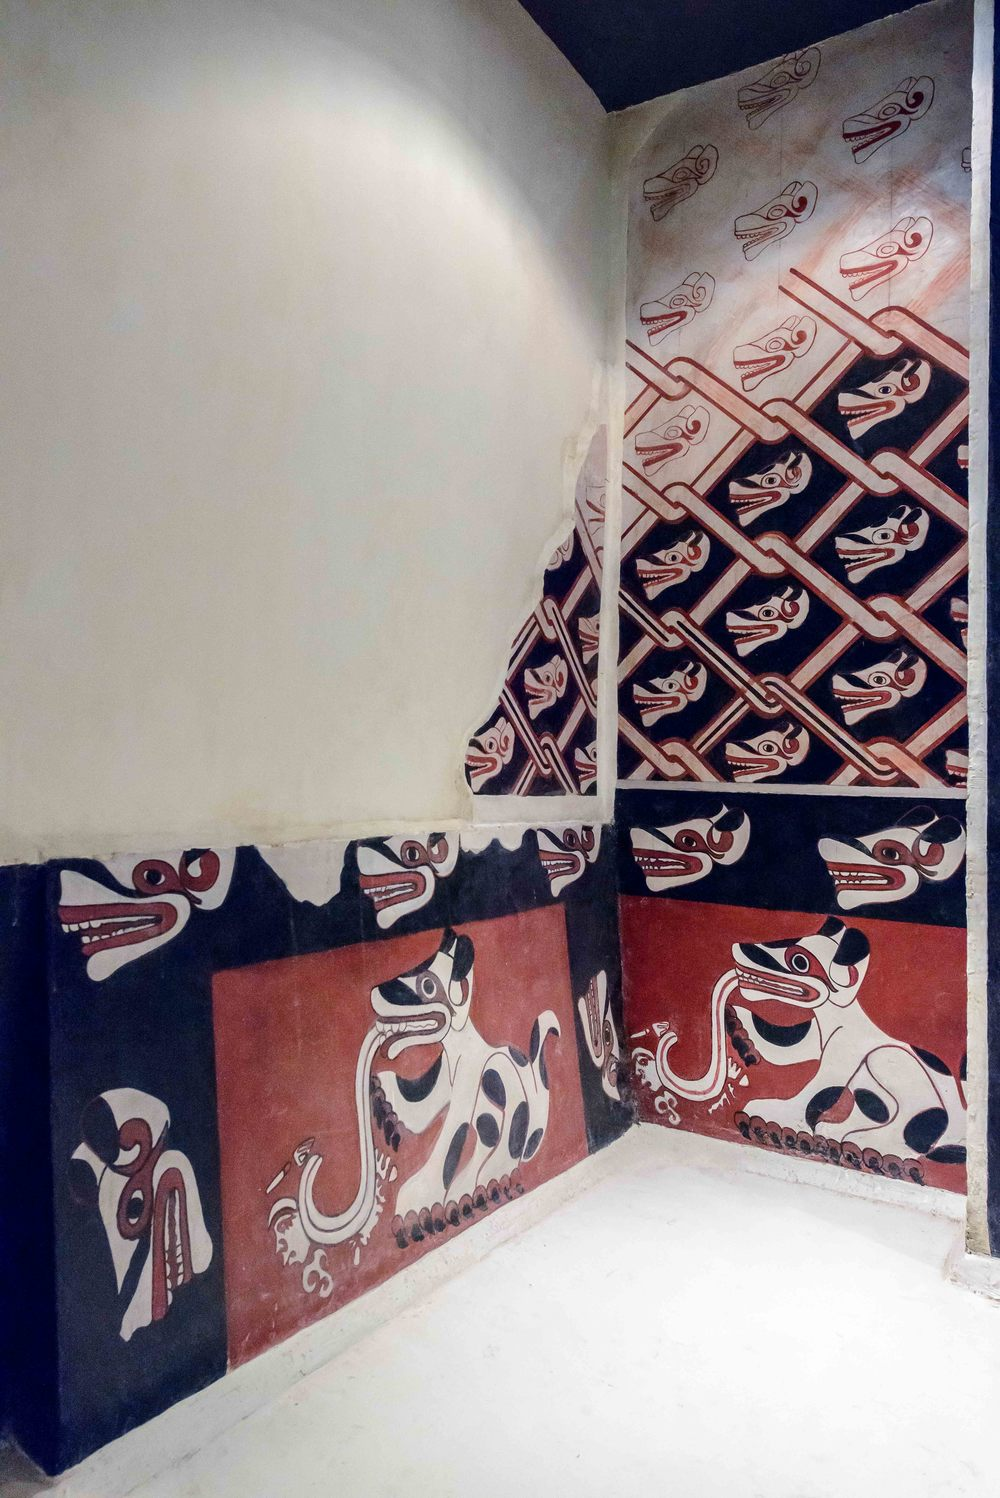 Reproduction of the Portico 25 from Tetitla. This reproduction shows some of the wall paintings that can still be found at Portico and Patio 25 at Tetitla residential complex.